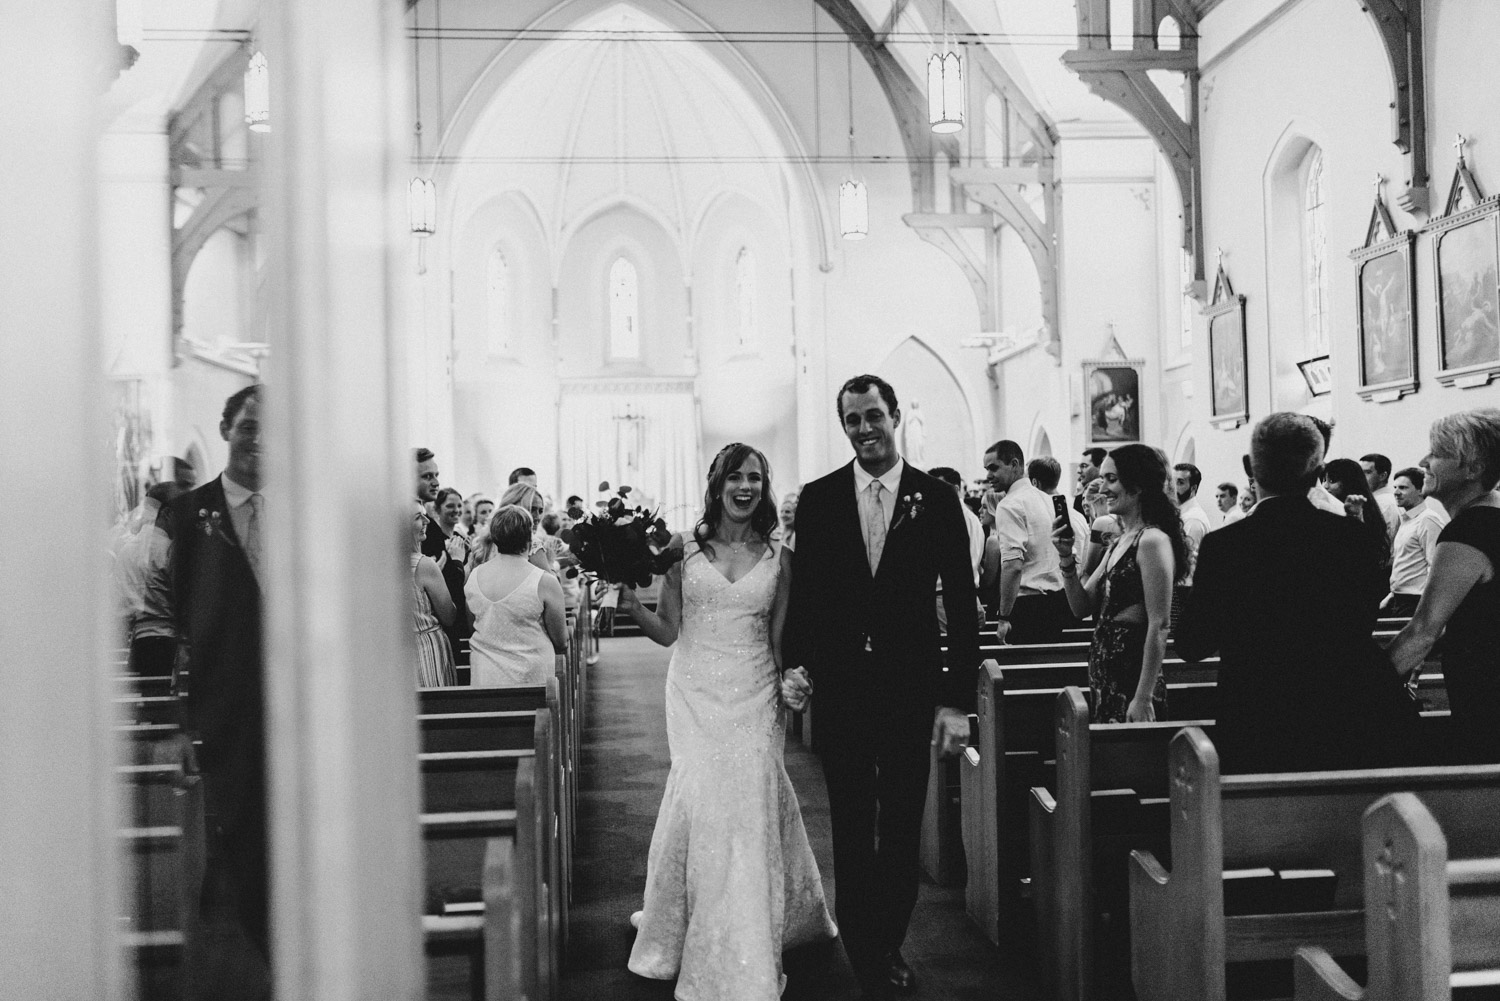 The bride and groom walk down the aisle together as a married couple